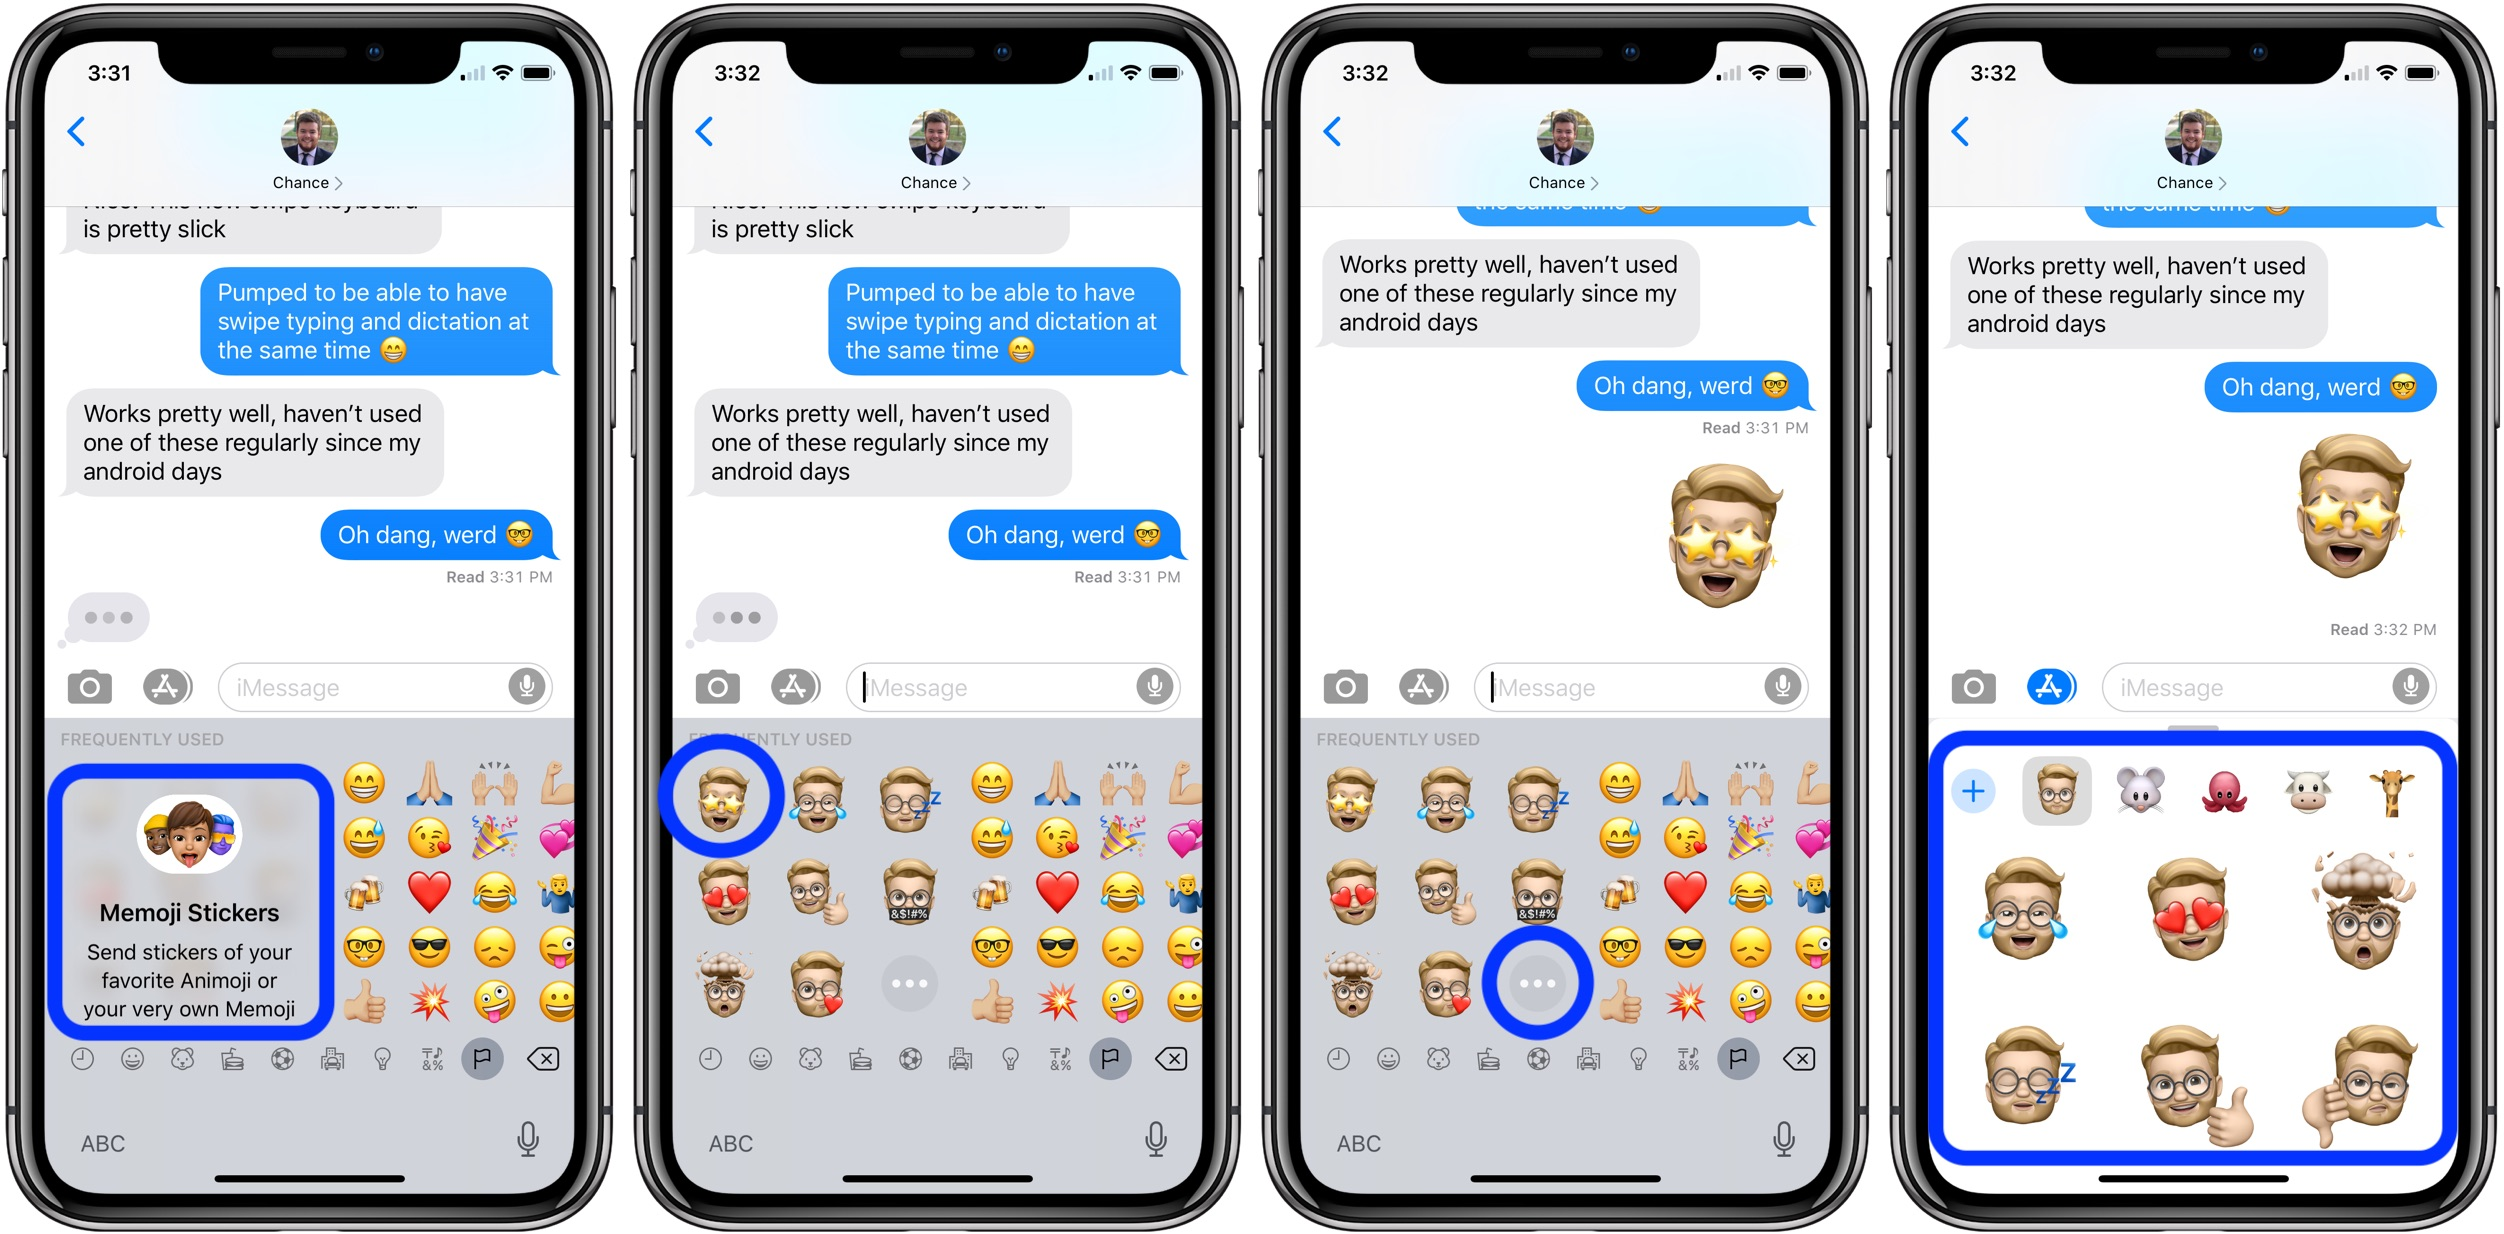 How to use Memoij Stickers on iPhone in iOS 13 - 9to5Mac